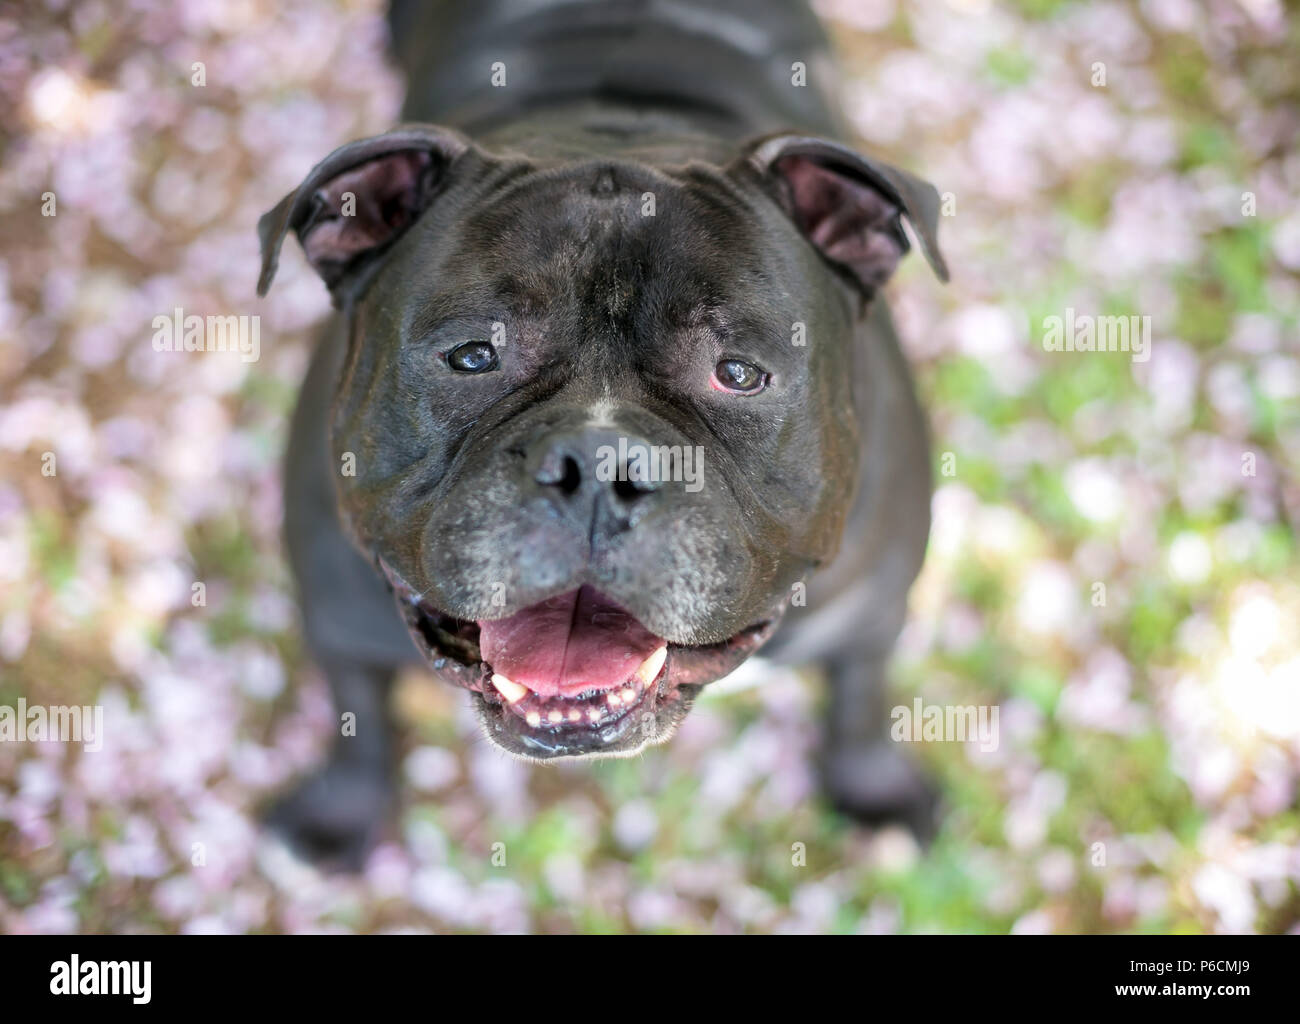 A Staffordshire Bull Terrier dog with a happy expression - Stock Image